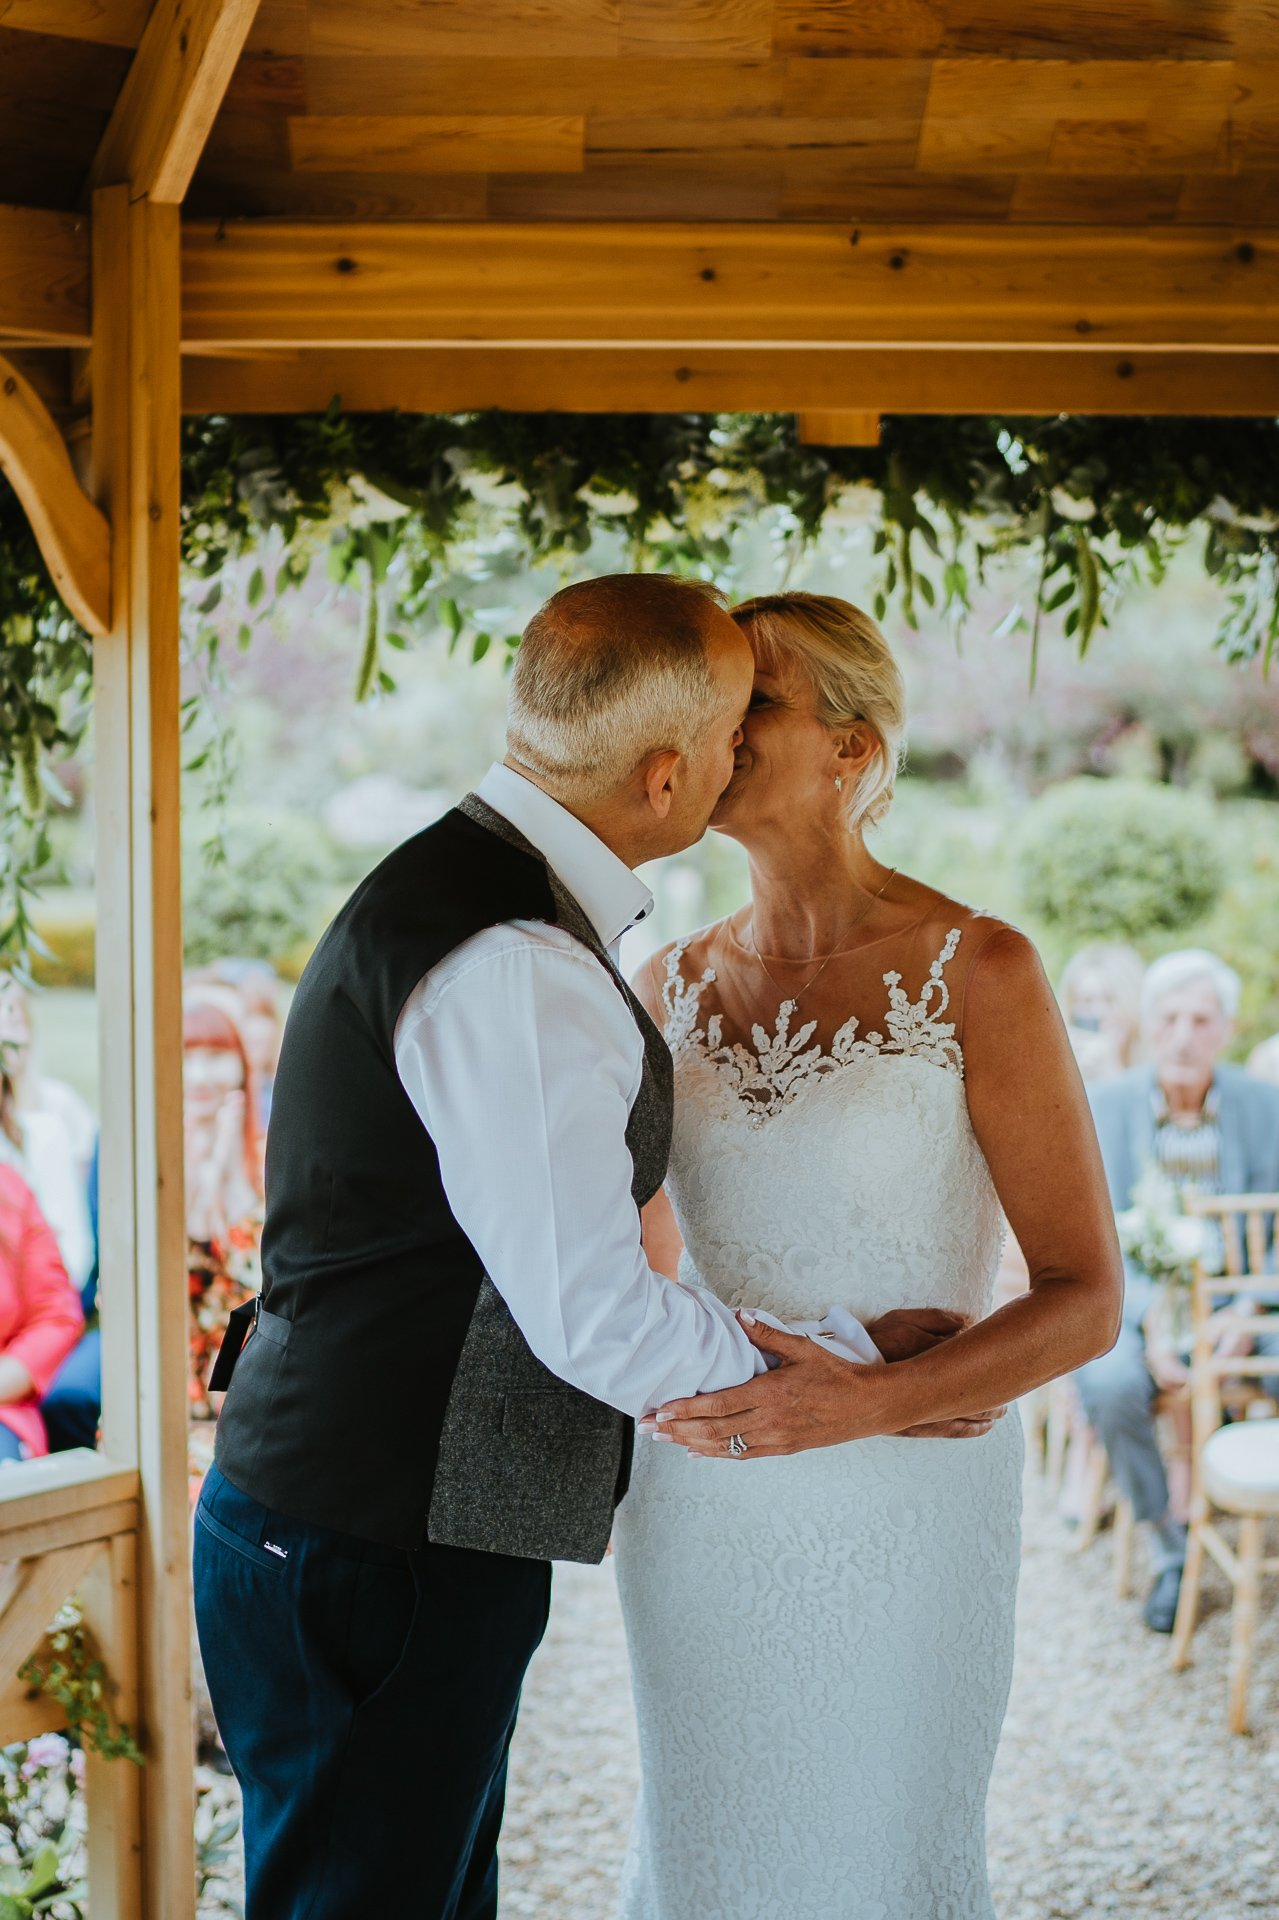 Bride and Groom first kiss at The Secret Garden Wedding venue